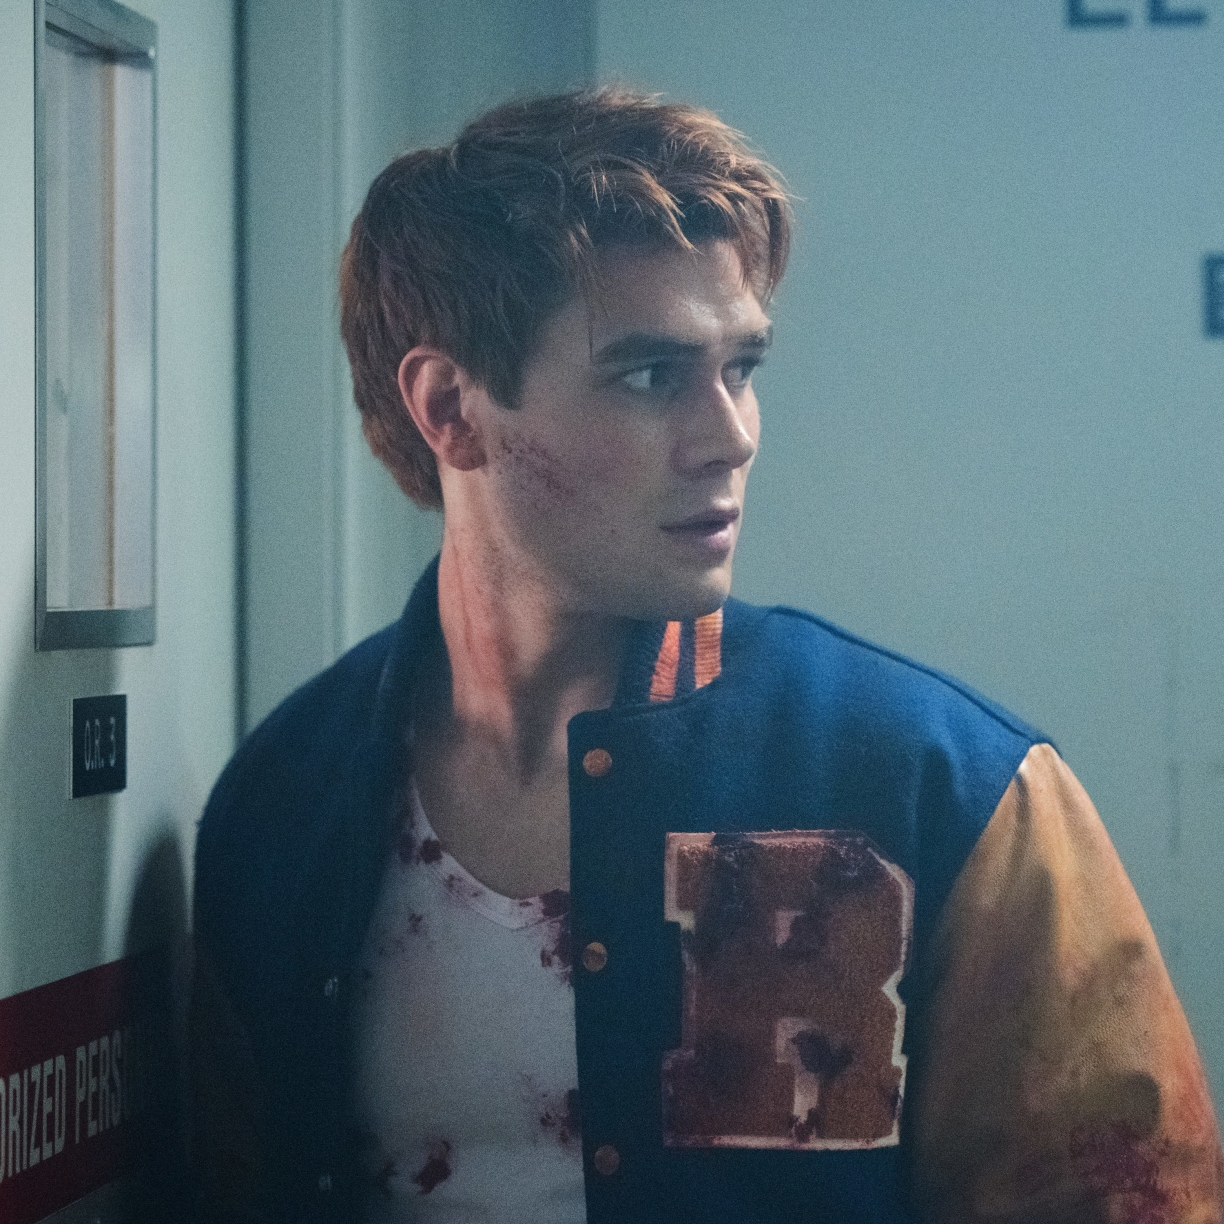 Riverdale Kj Apa As Archie Andrews Hd 4k Wallpaper